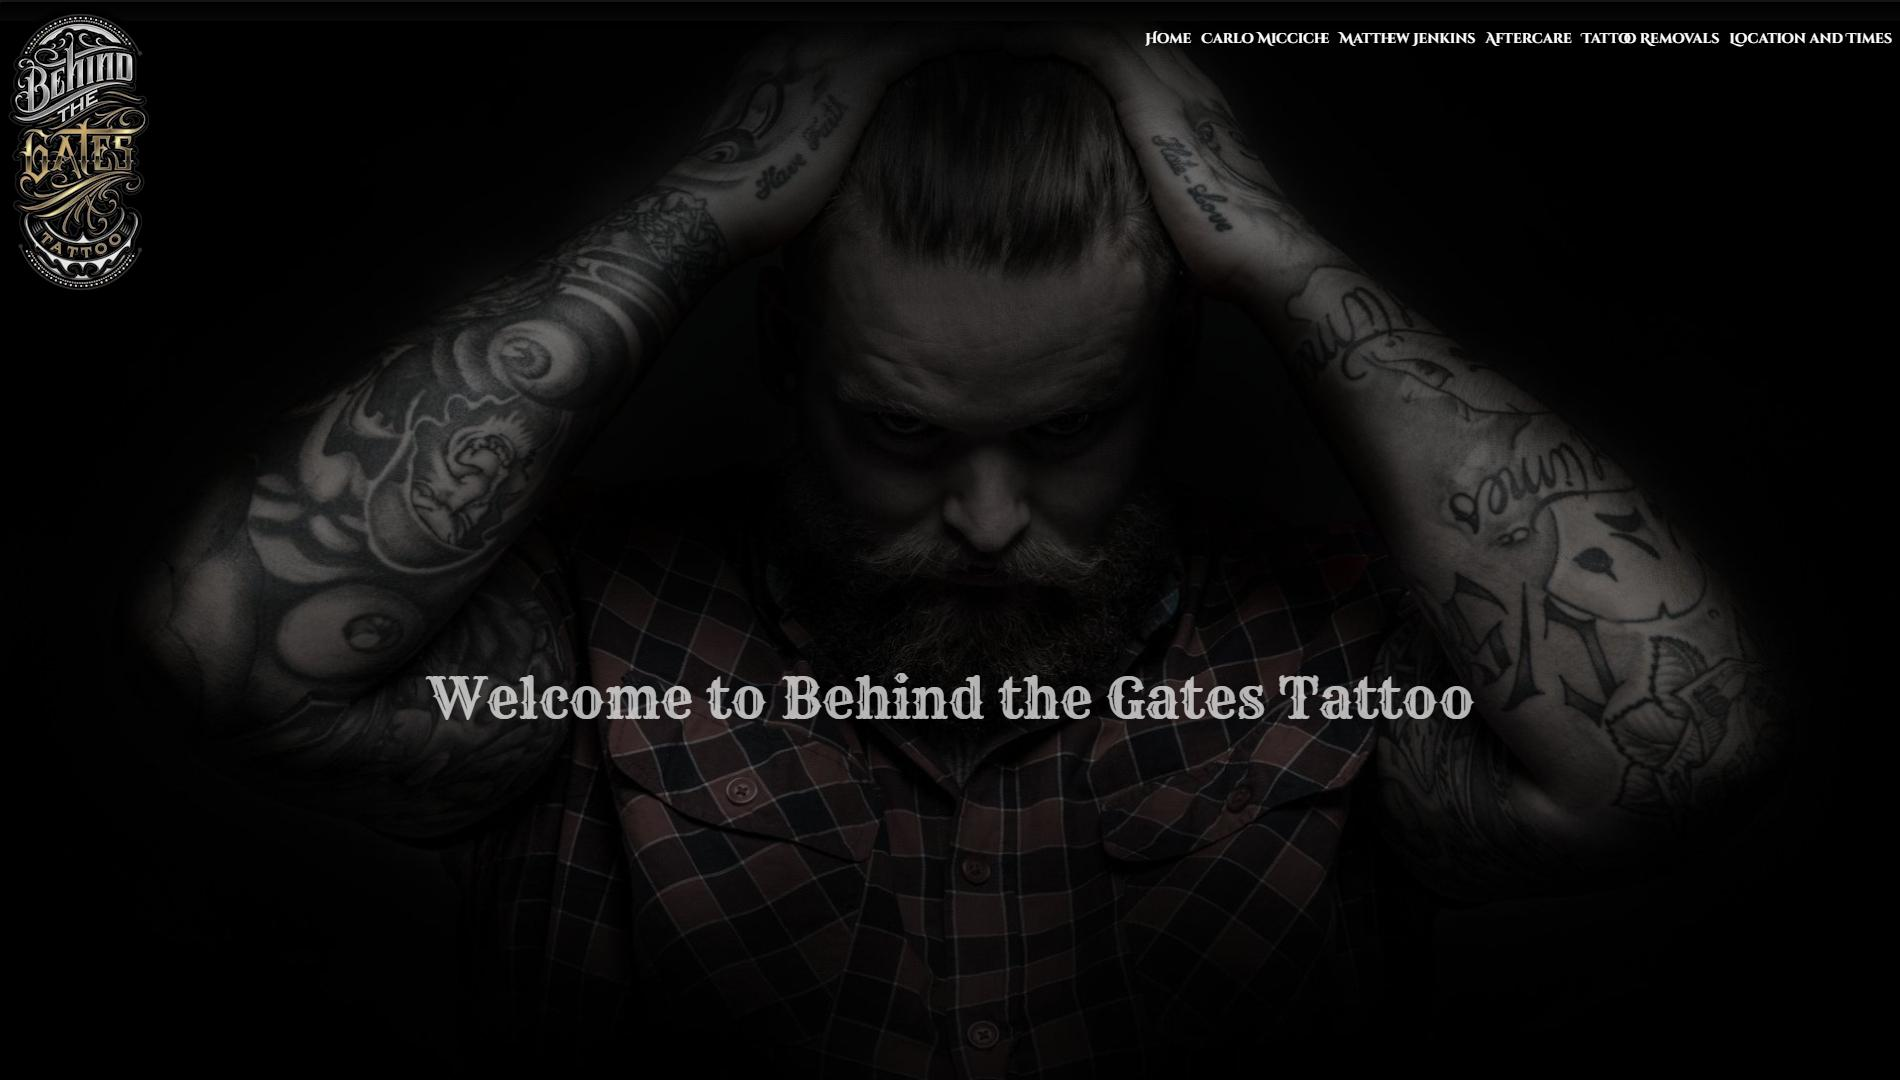 image-of-behind-the-gates-tattoo-website